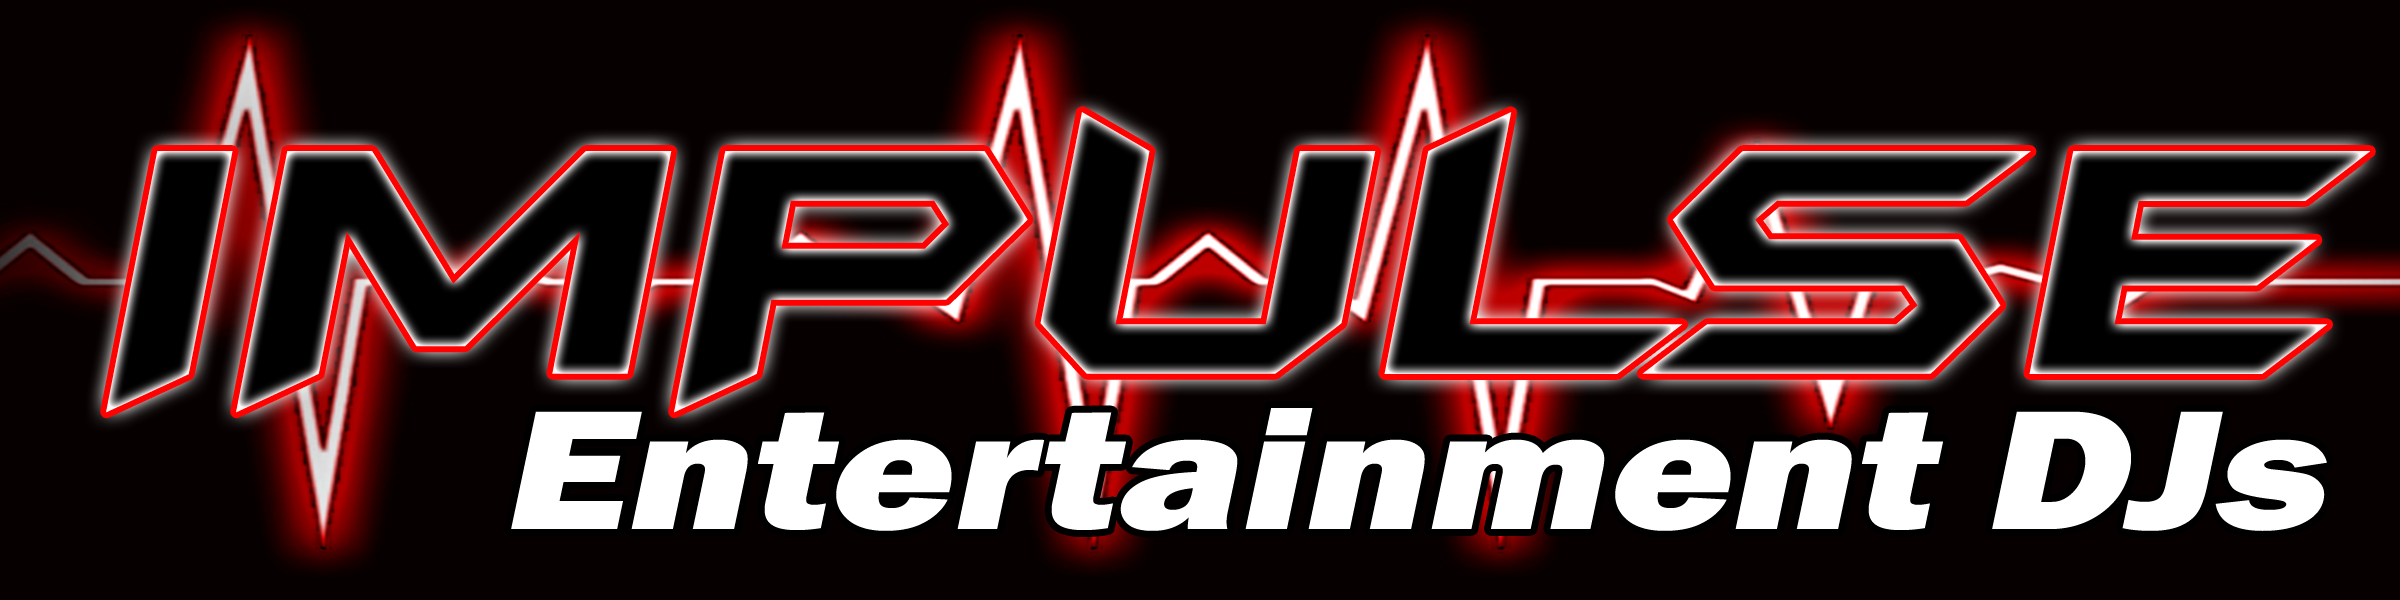 new logo 2015_edited-1.png